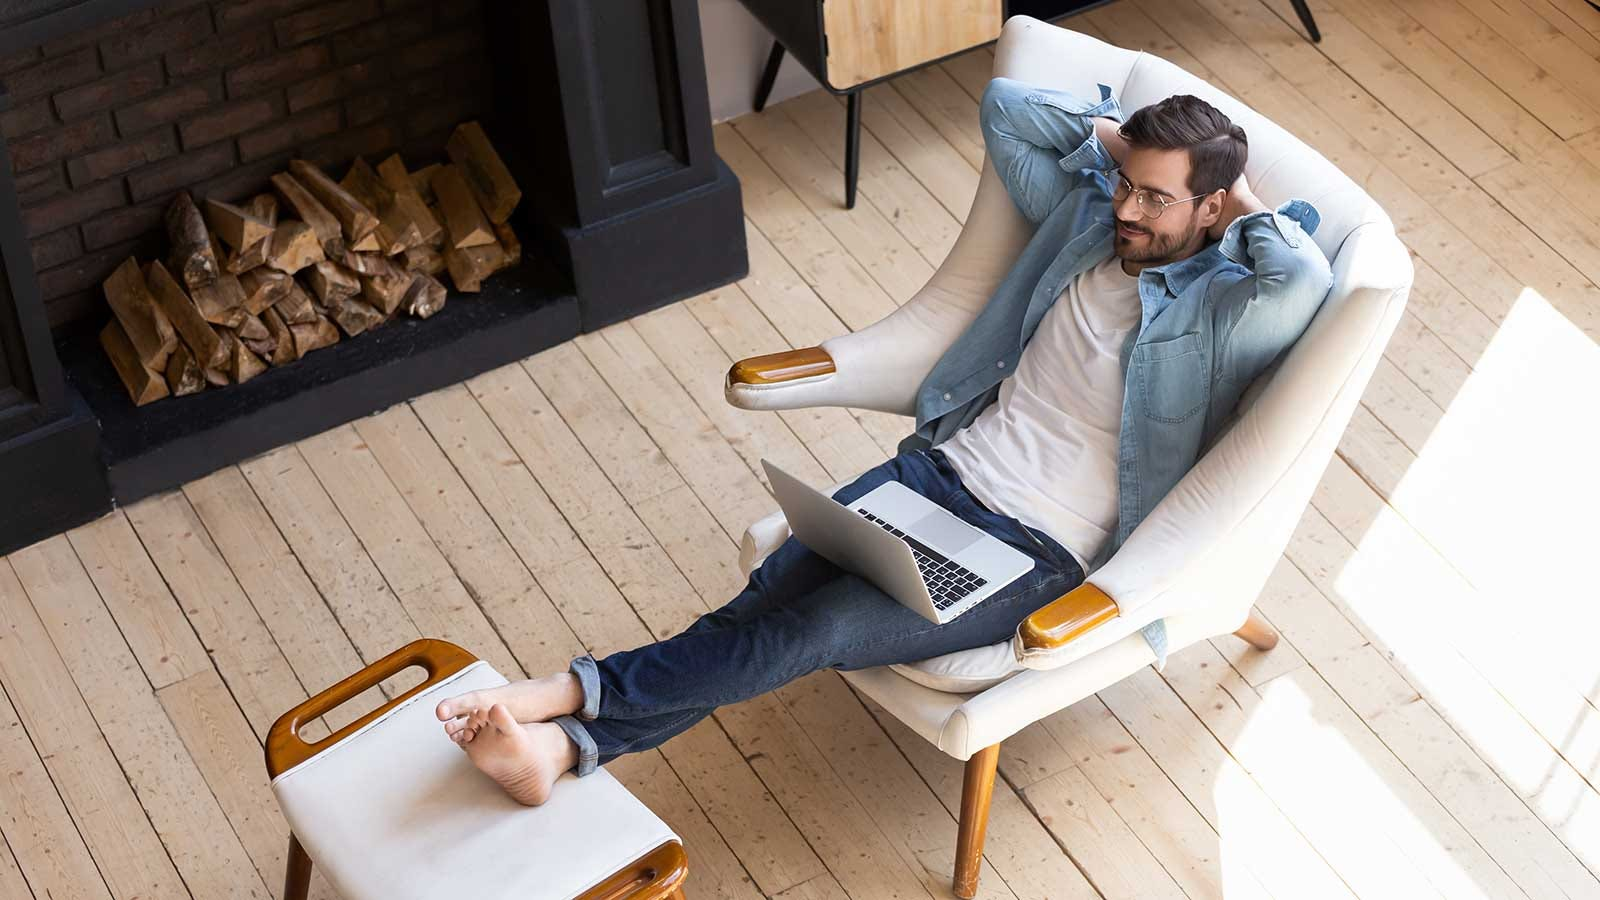 A man relaxing in a chair with his feet up and a laptop on his lap.